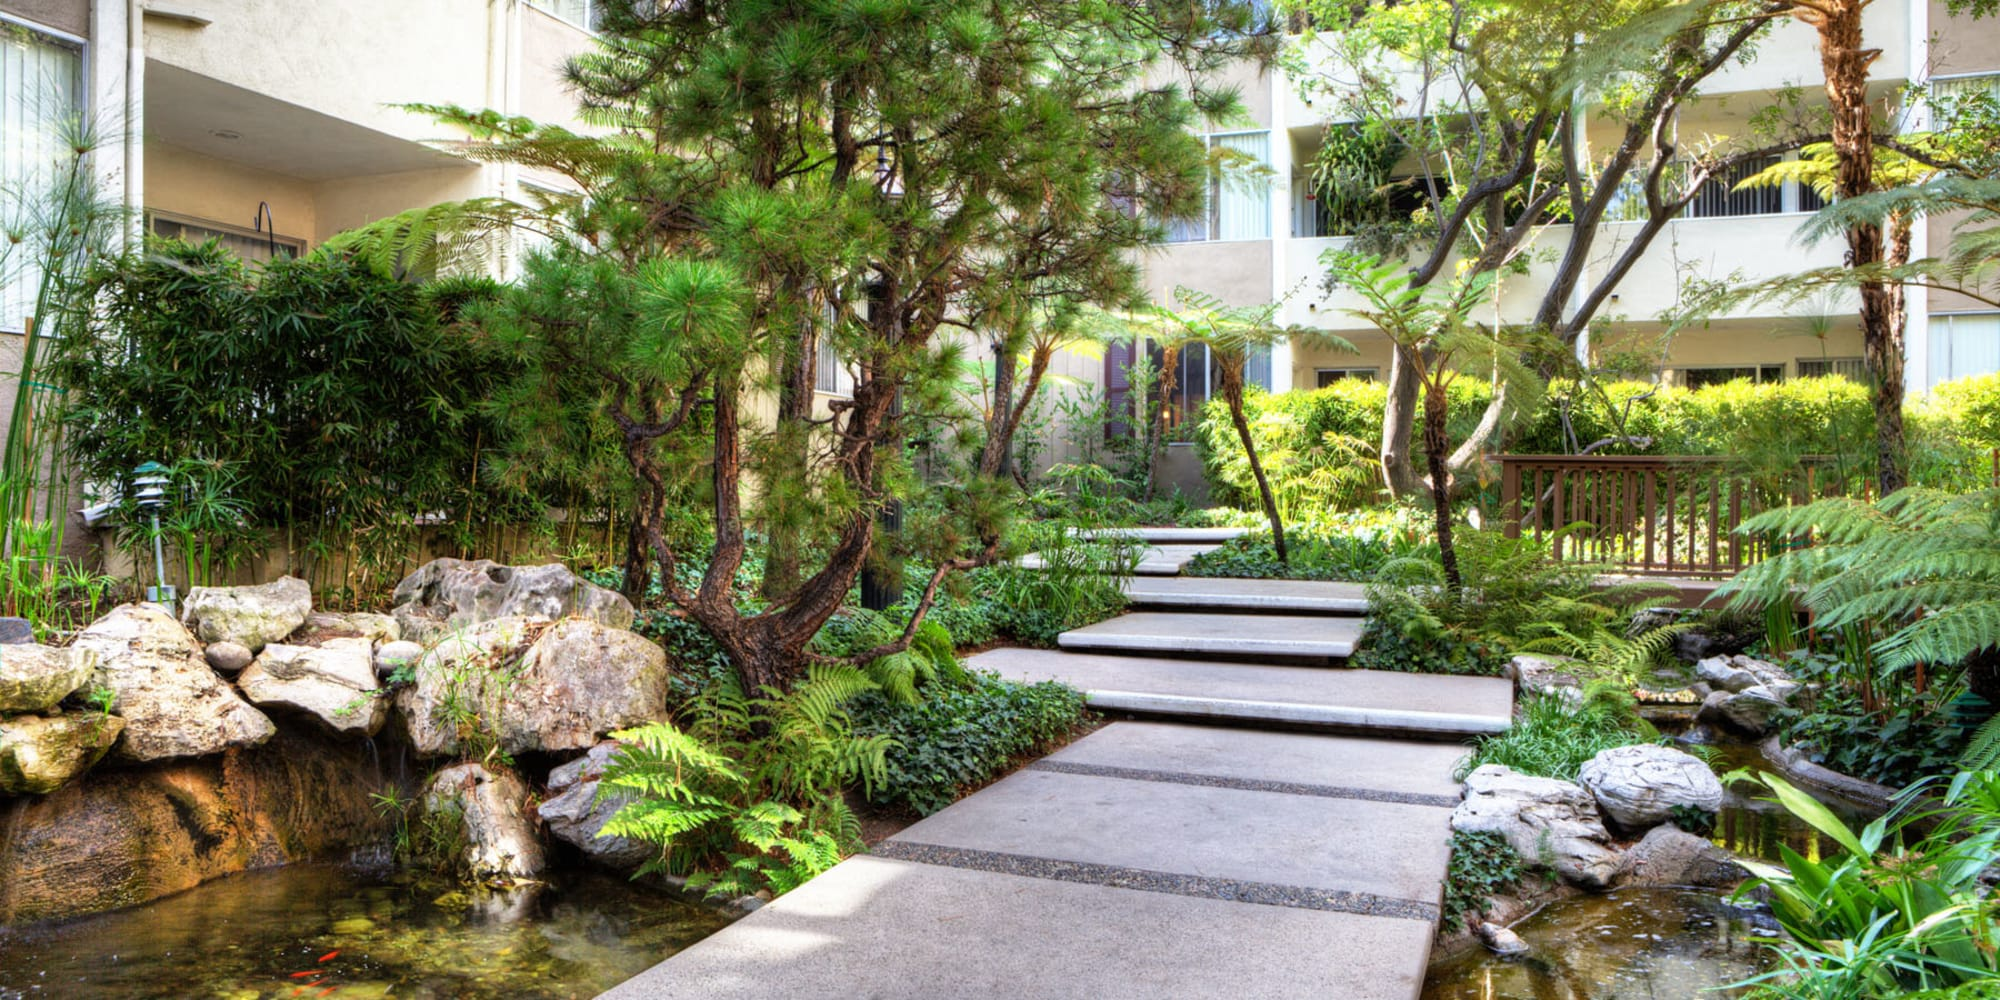 Pathway over a koi pond at Sunset Barrington Gardens in Los Angeles, California